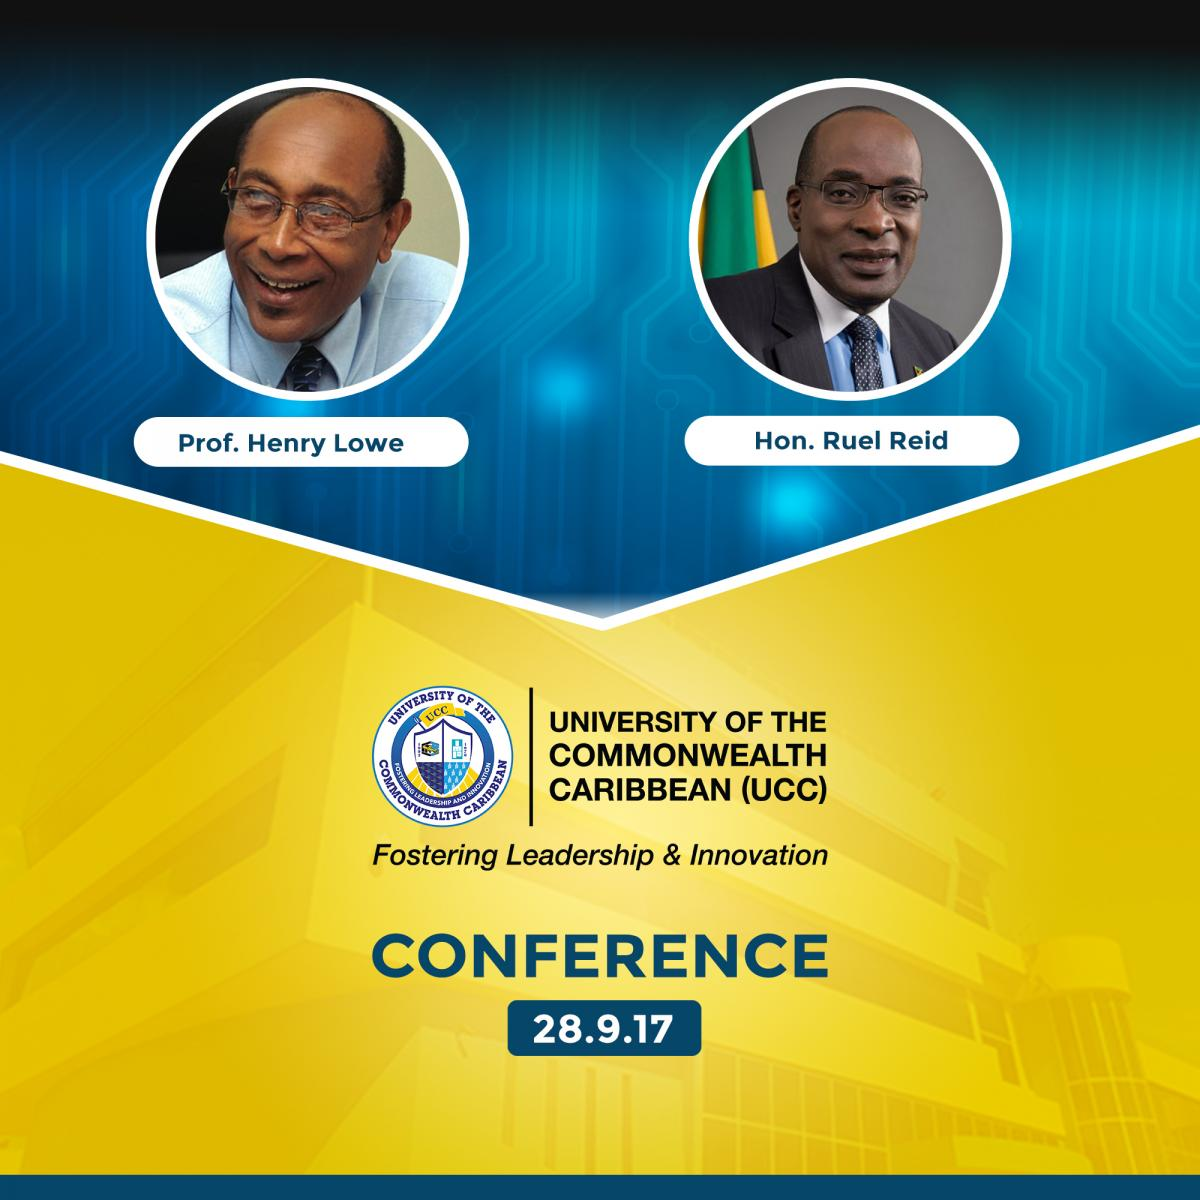 Register today for the UCC Conference